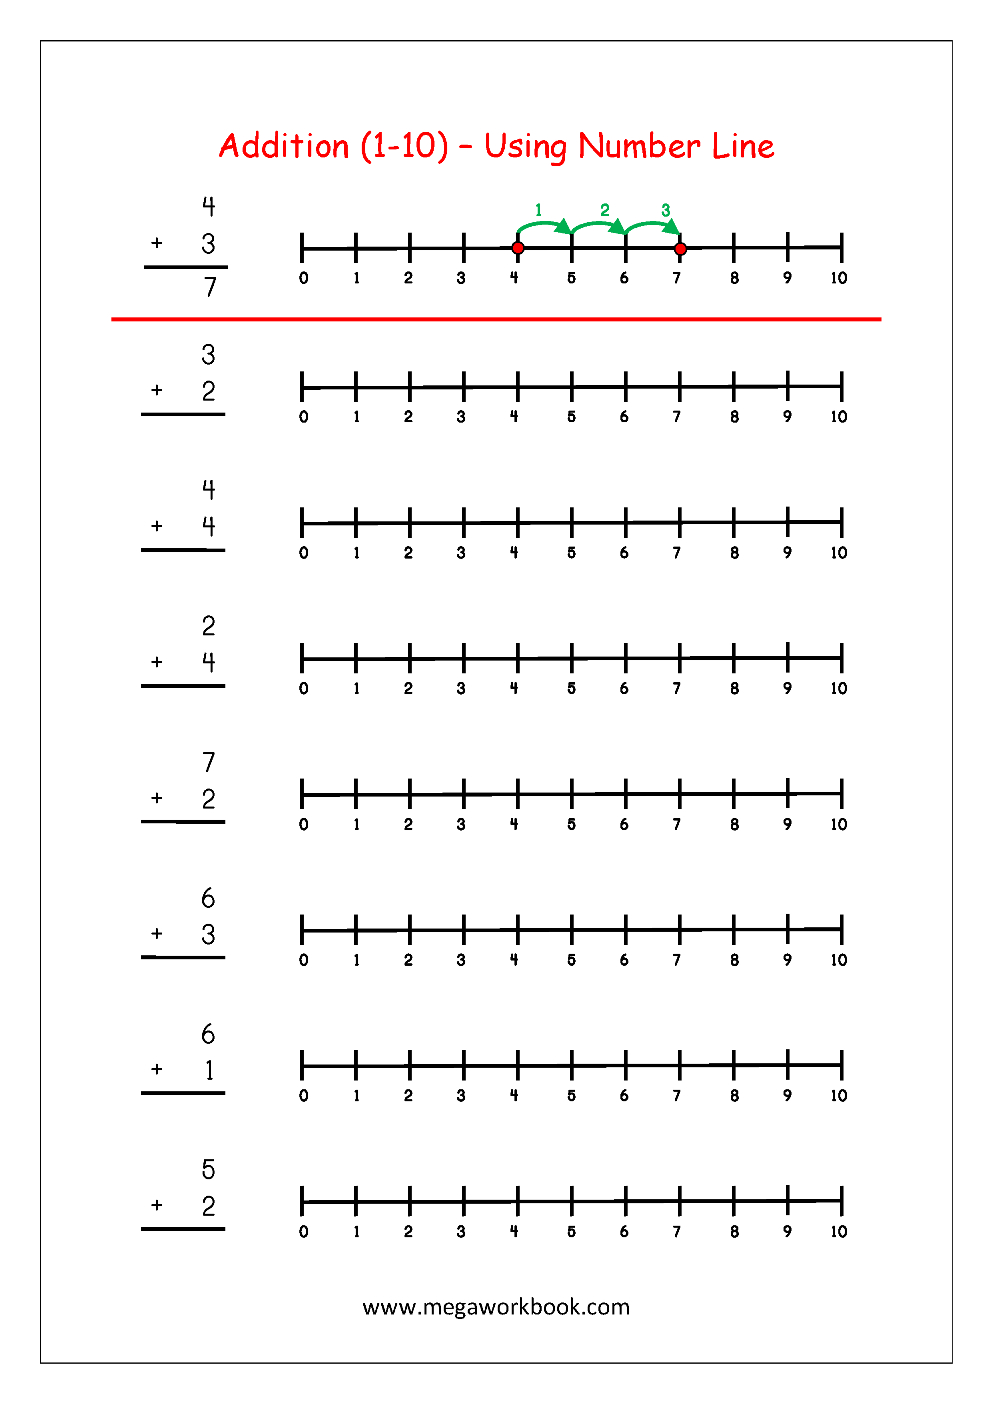 Free Printable Number Addition Worksheets 110 For Kindergarten Or Free Fraction Number Line Worksheets 3Rd Grade